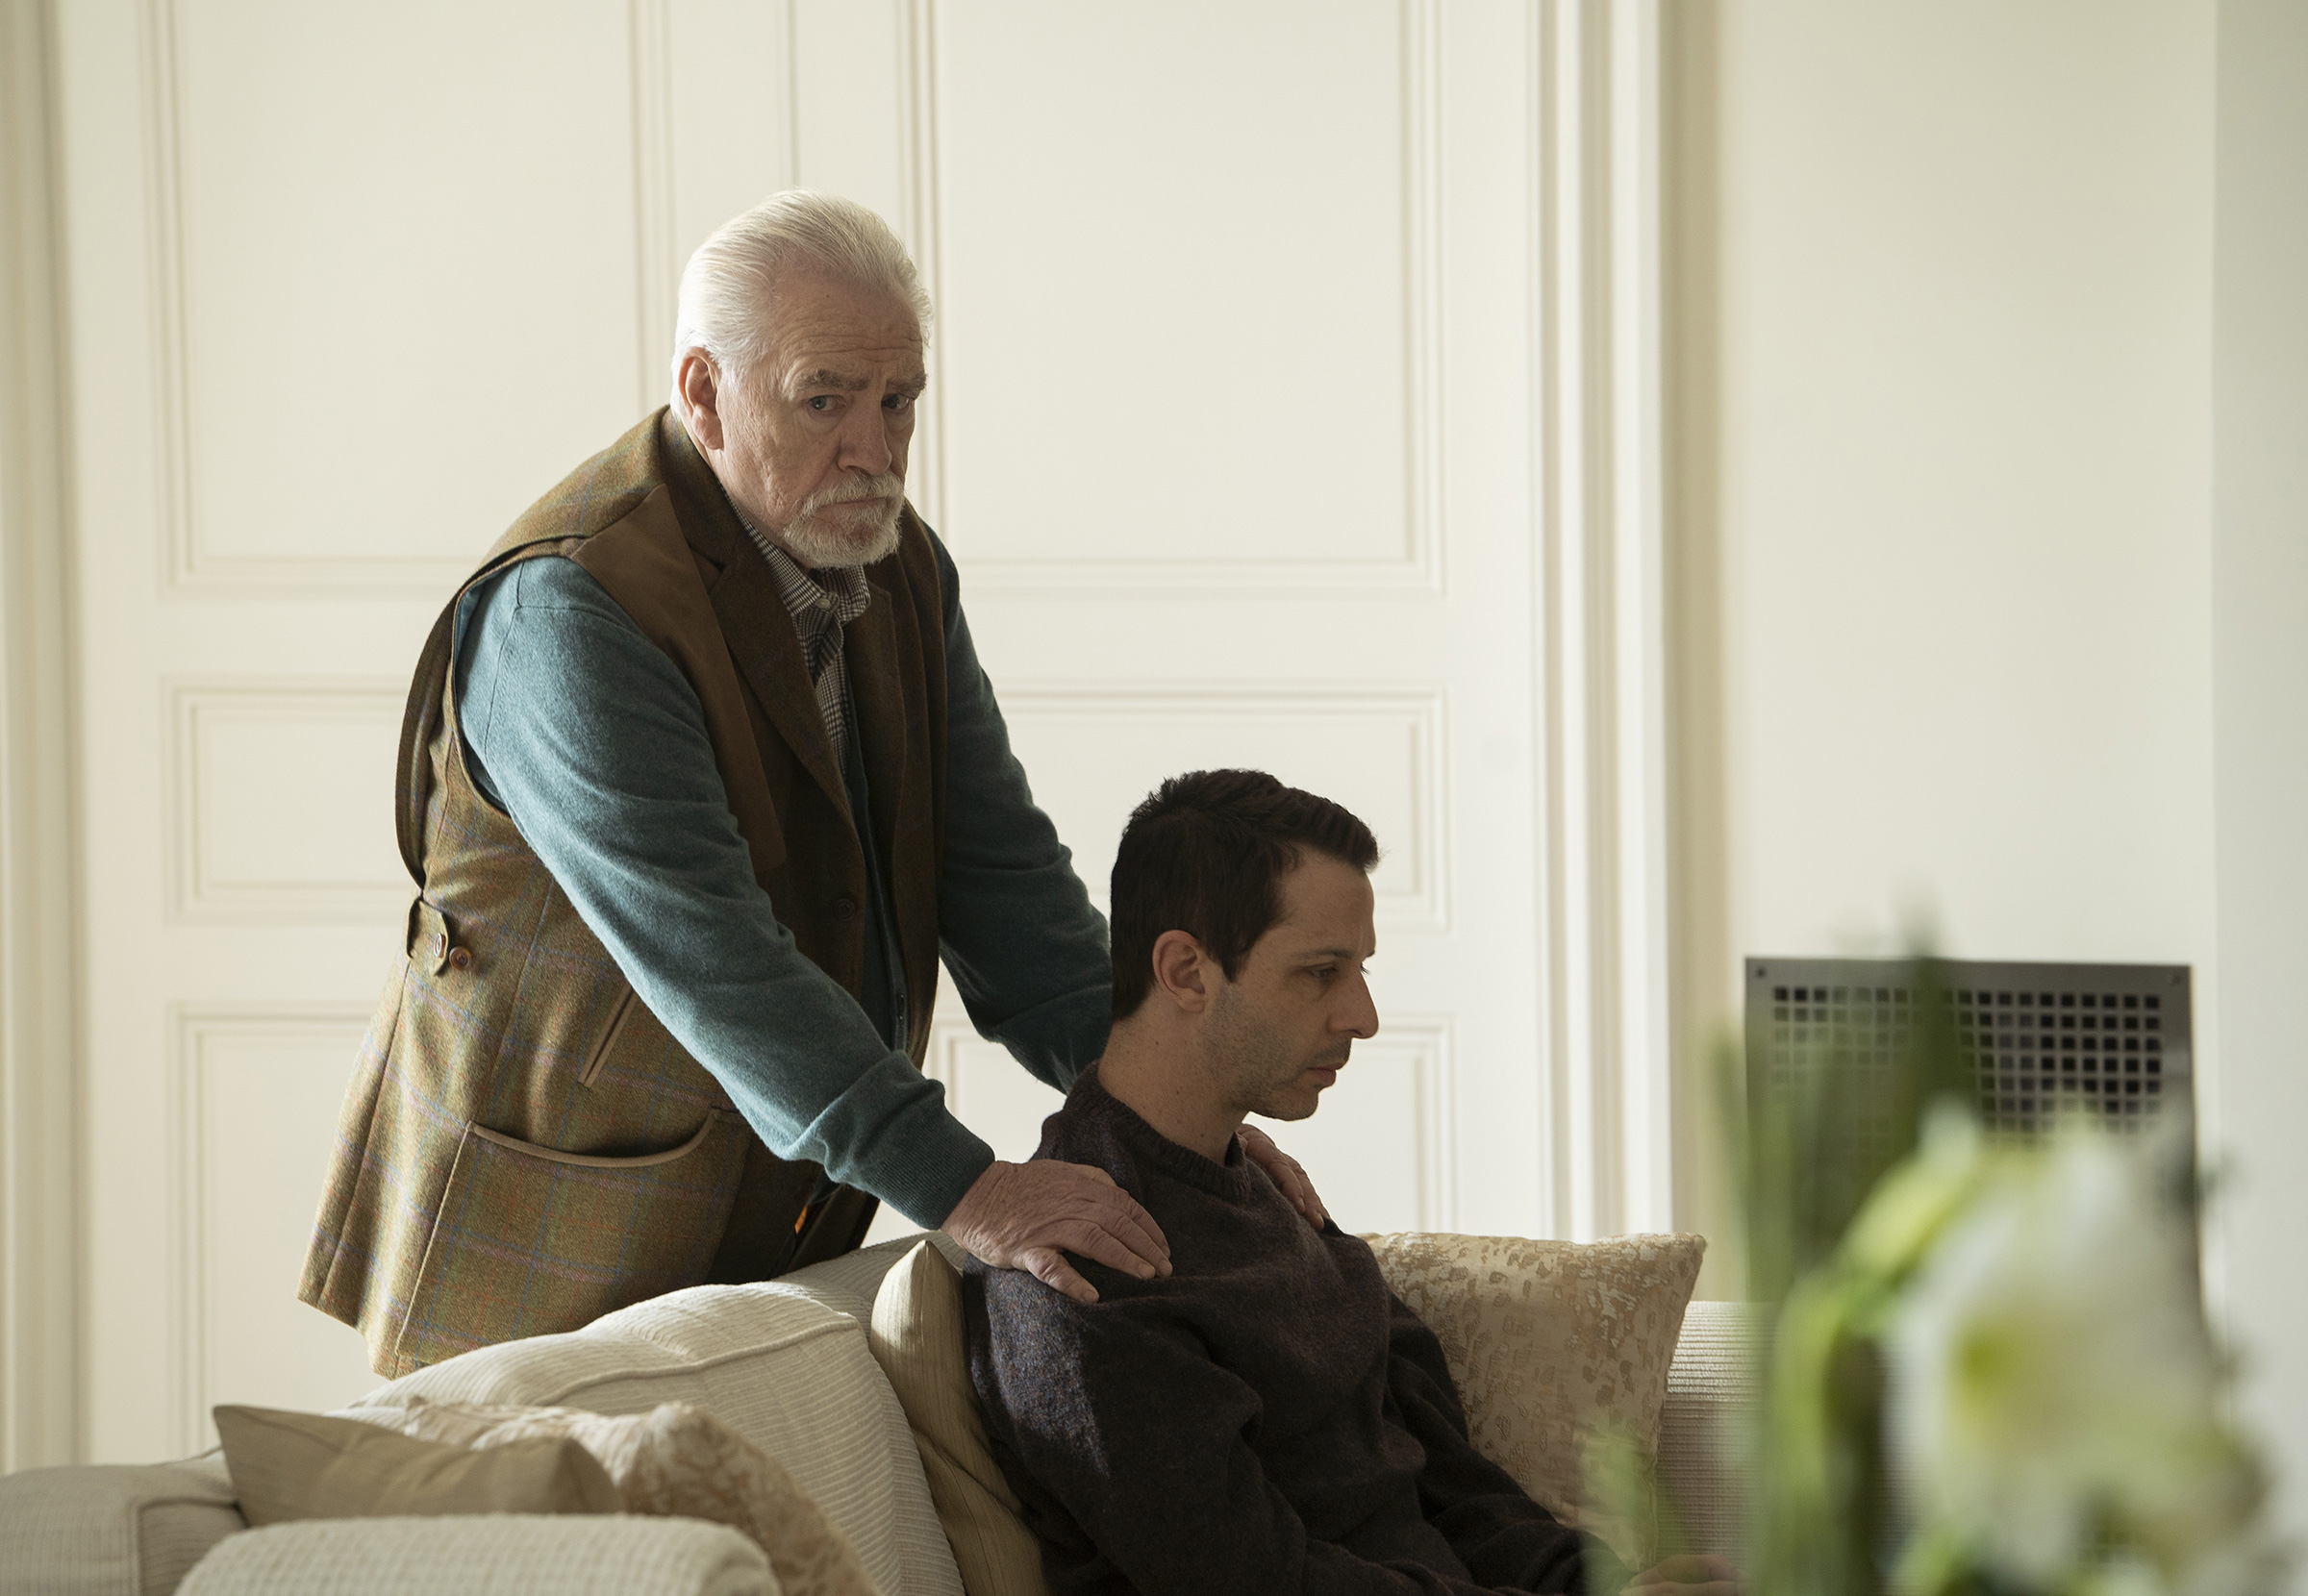 The Succession season 2 premiere majorly shifts the show's power dynamics